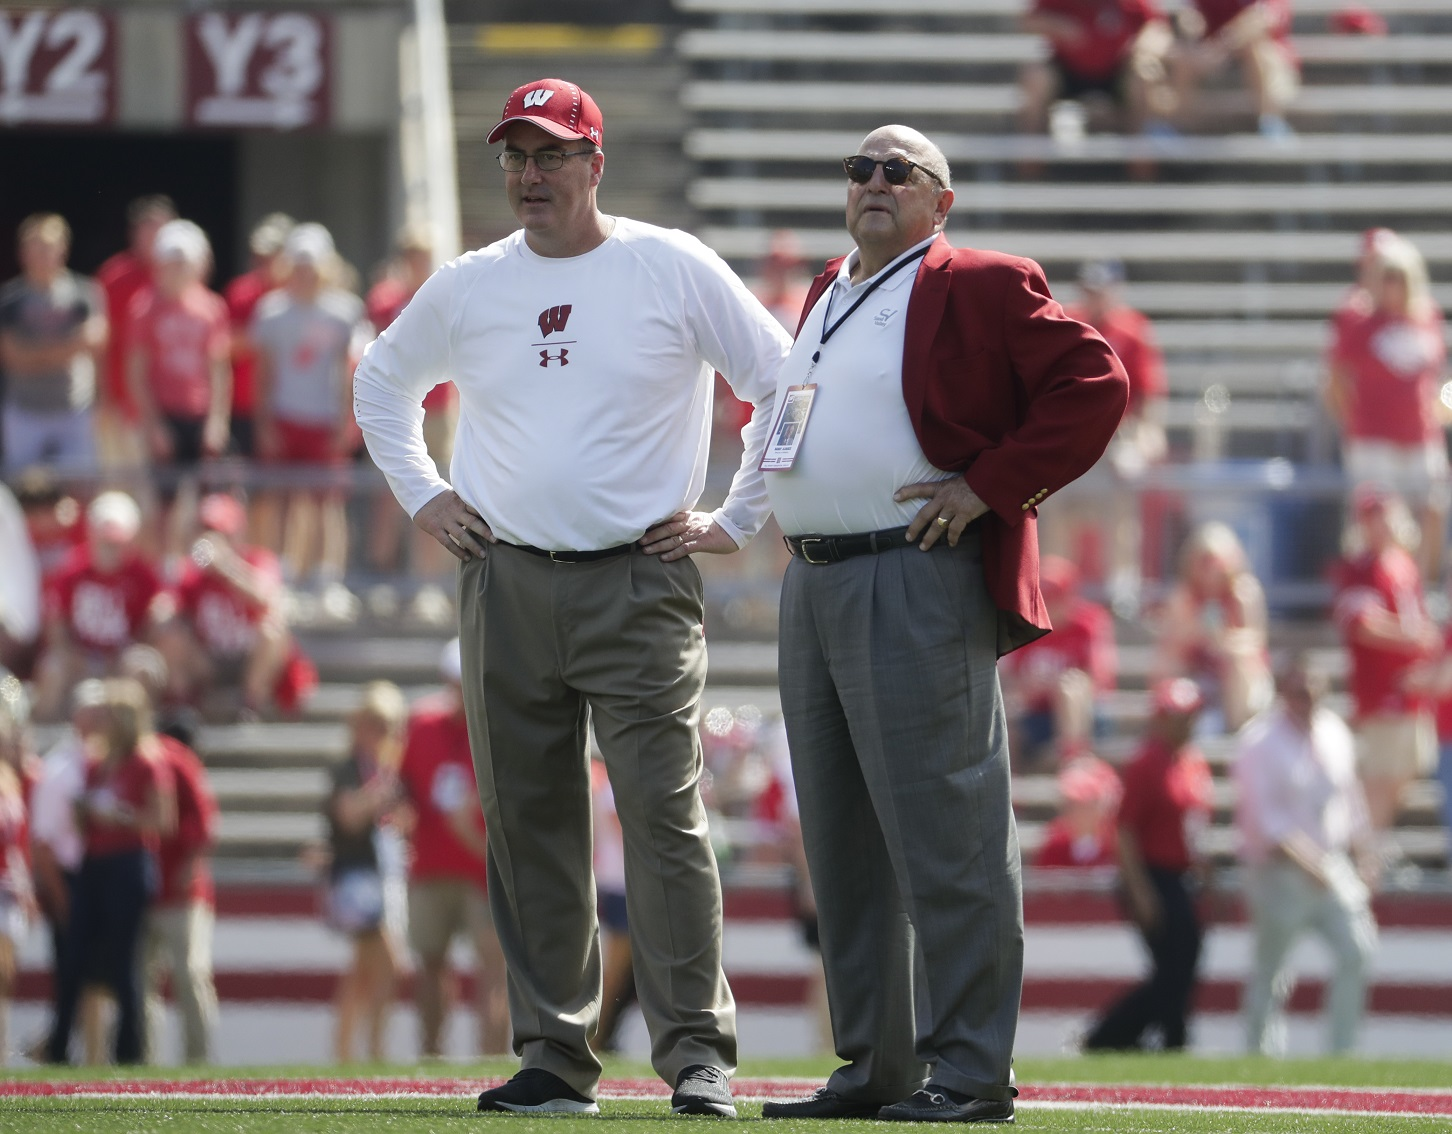 Wisconsin hopes to hire new AD 'within a few months'